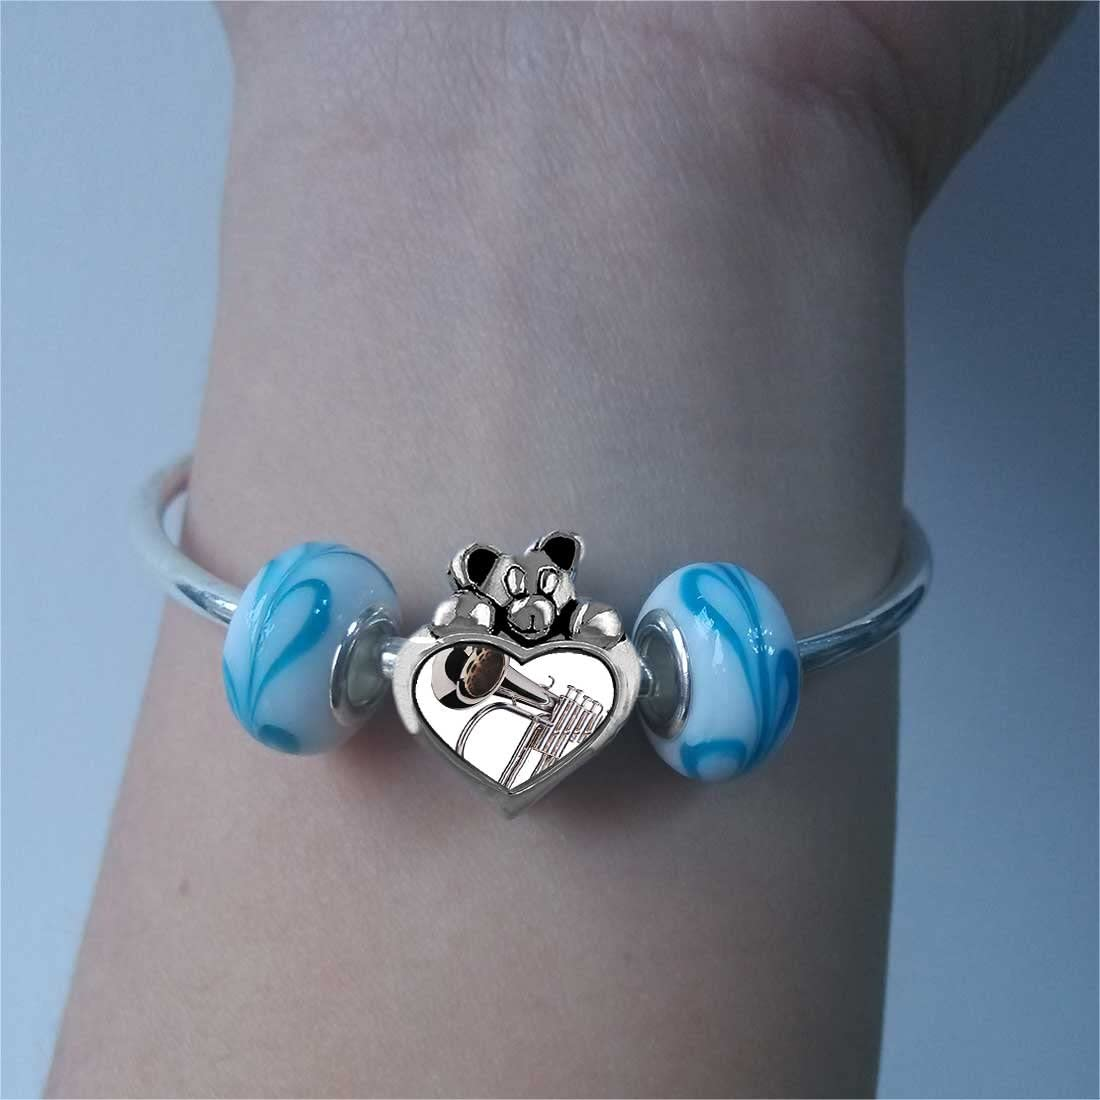 GiftJewelryShop Silver Tone Trumpet Sapphire Crystal September Birthstone I Love You Heart Care Bear Charm Bracelets